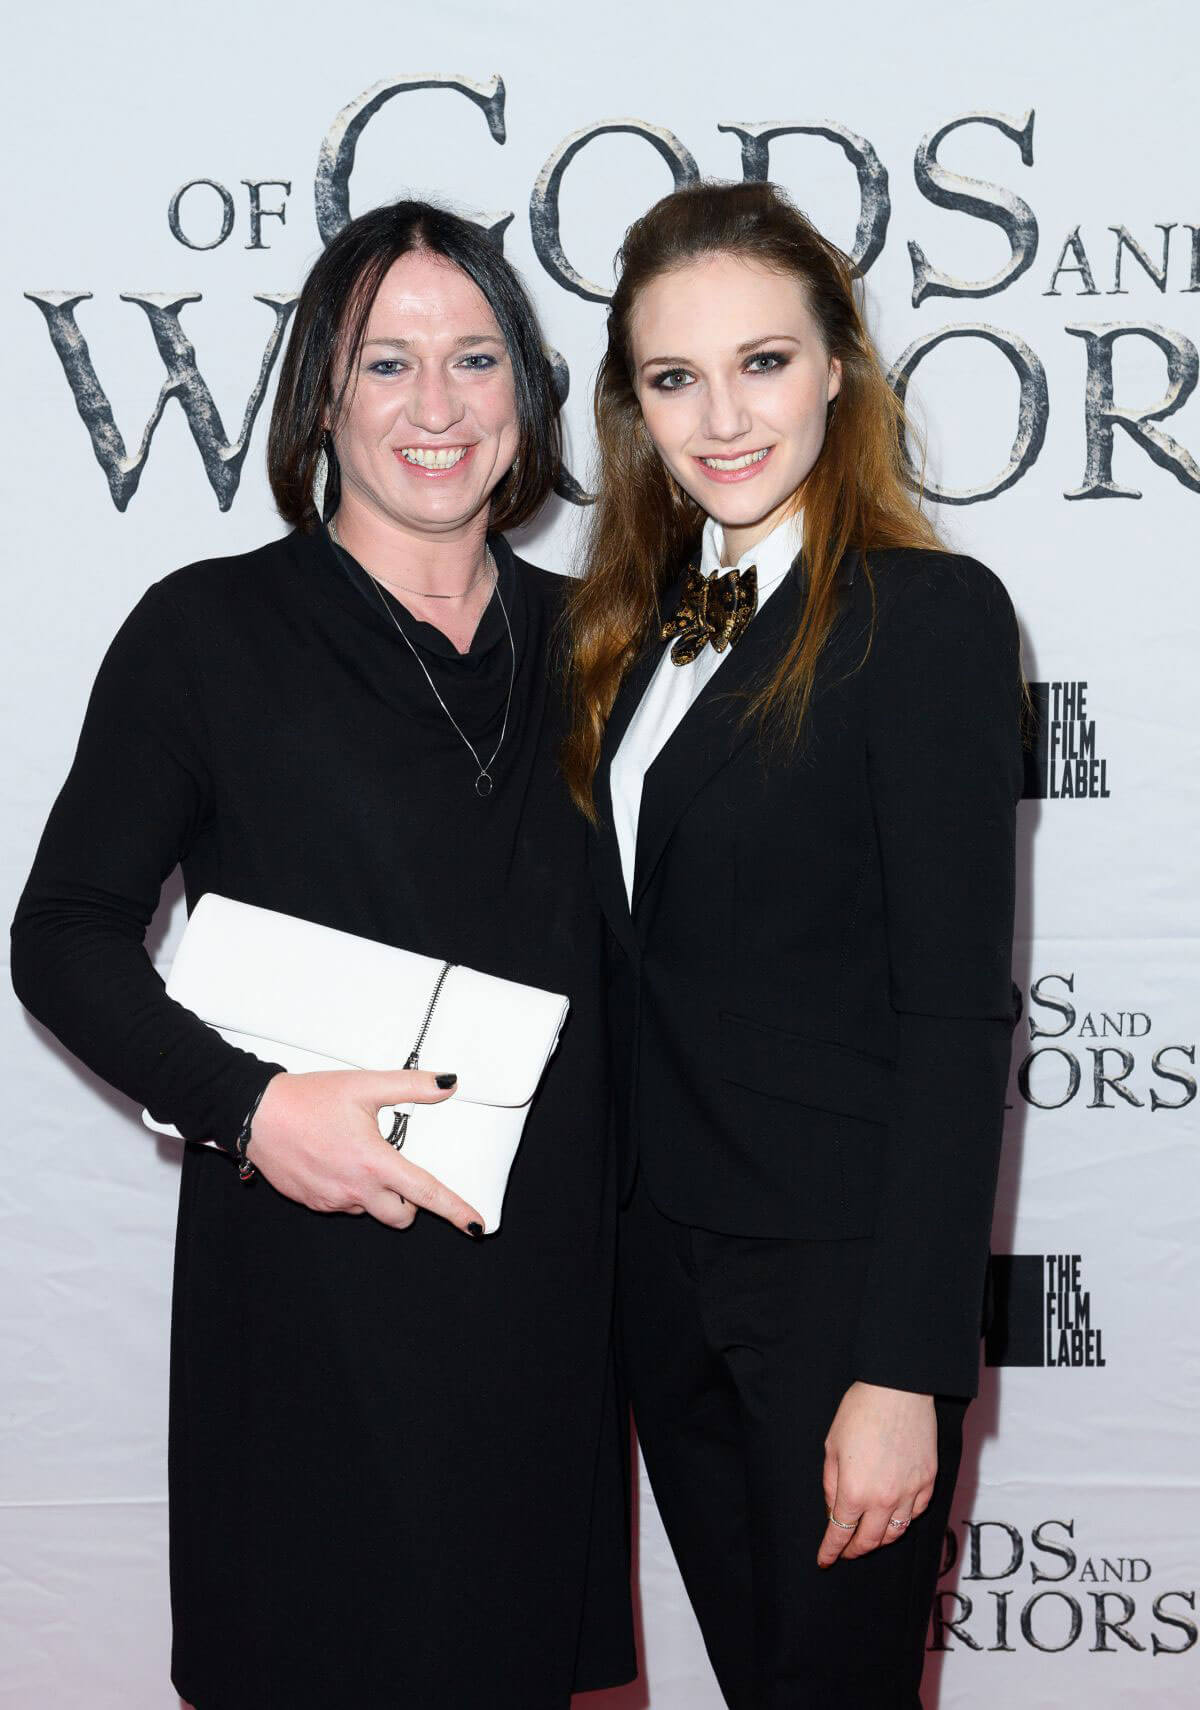 anna demetriou at of gods and warriors premiere in london